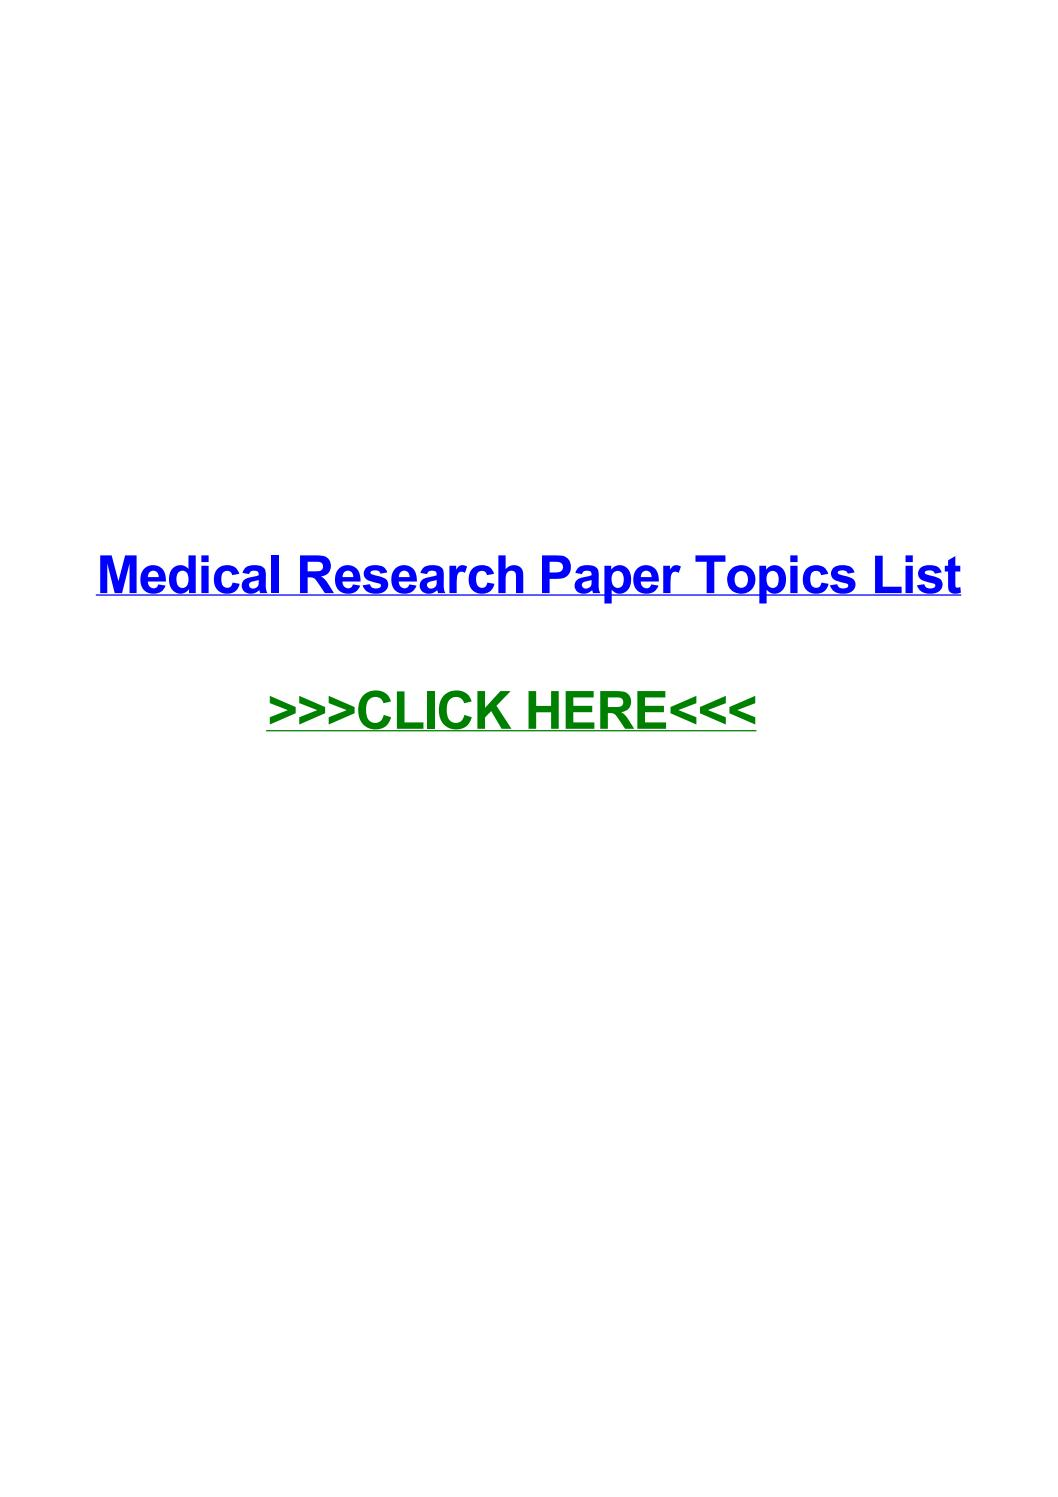 009 Medical Topics For Research Paper Page 1 Imposing Best Argumentative Field Papers Full